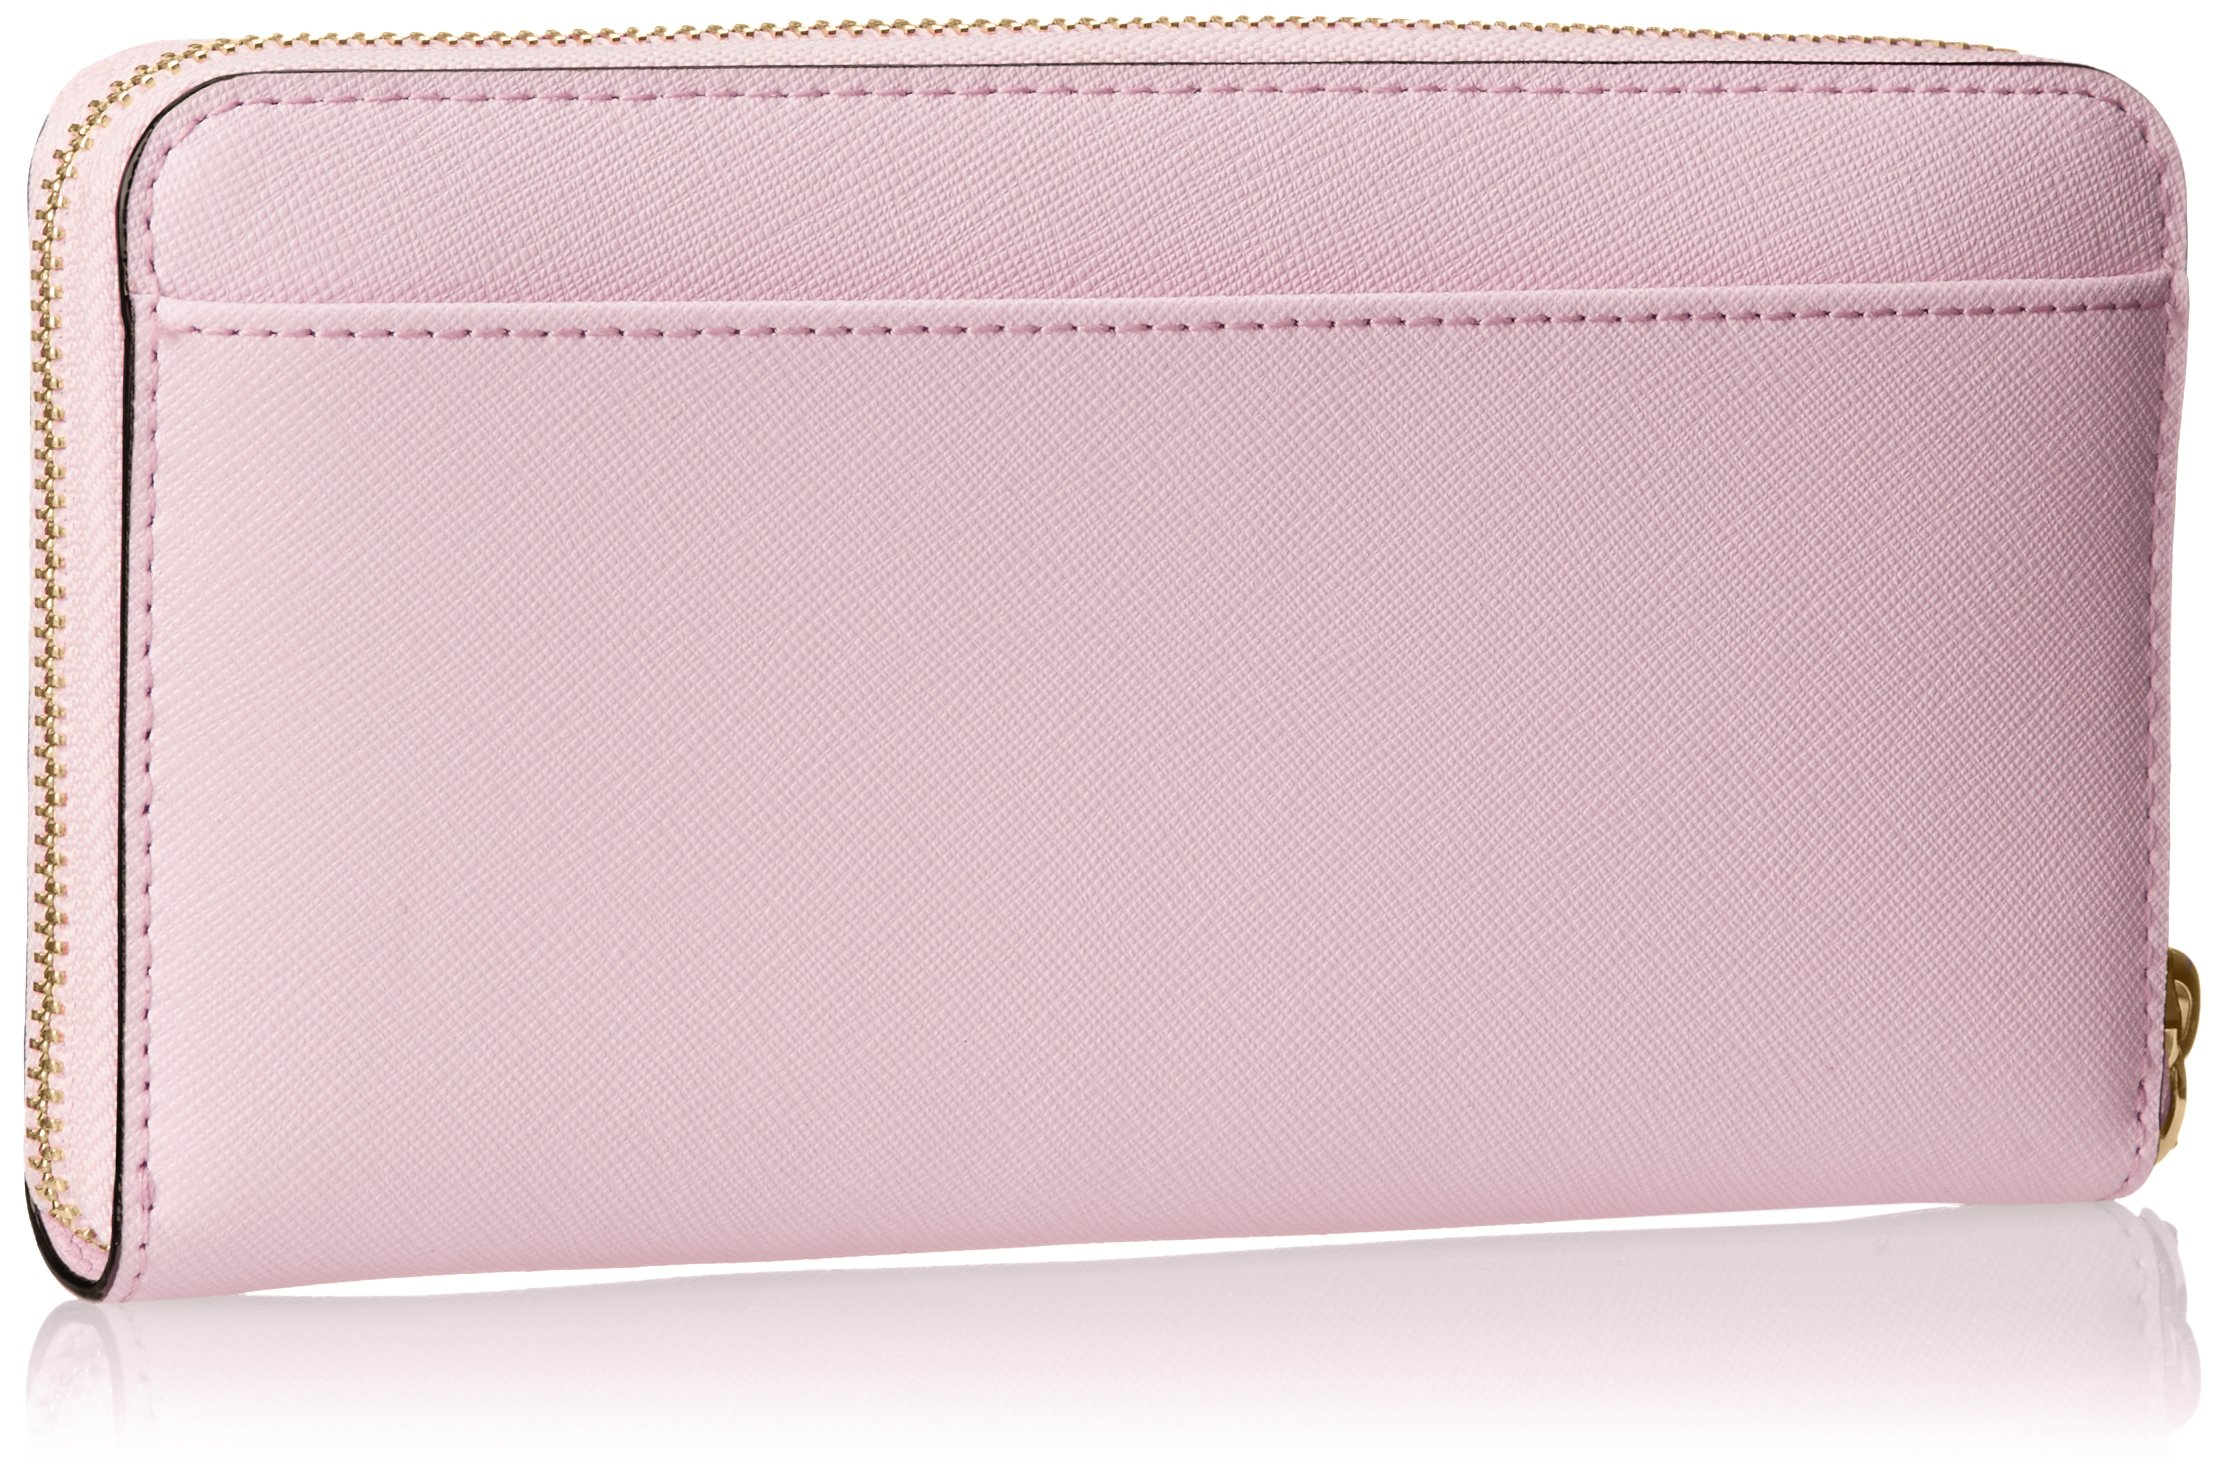 kate spade new york Cedar Street Lacey Wallet, Pink Blush, One Size by Kate Spade New York (Image #2)